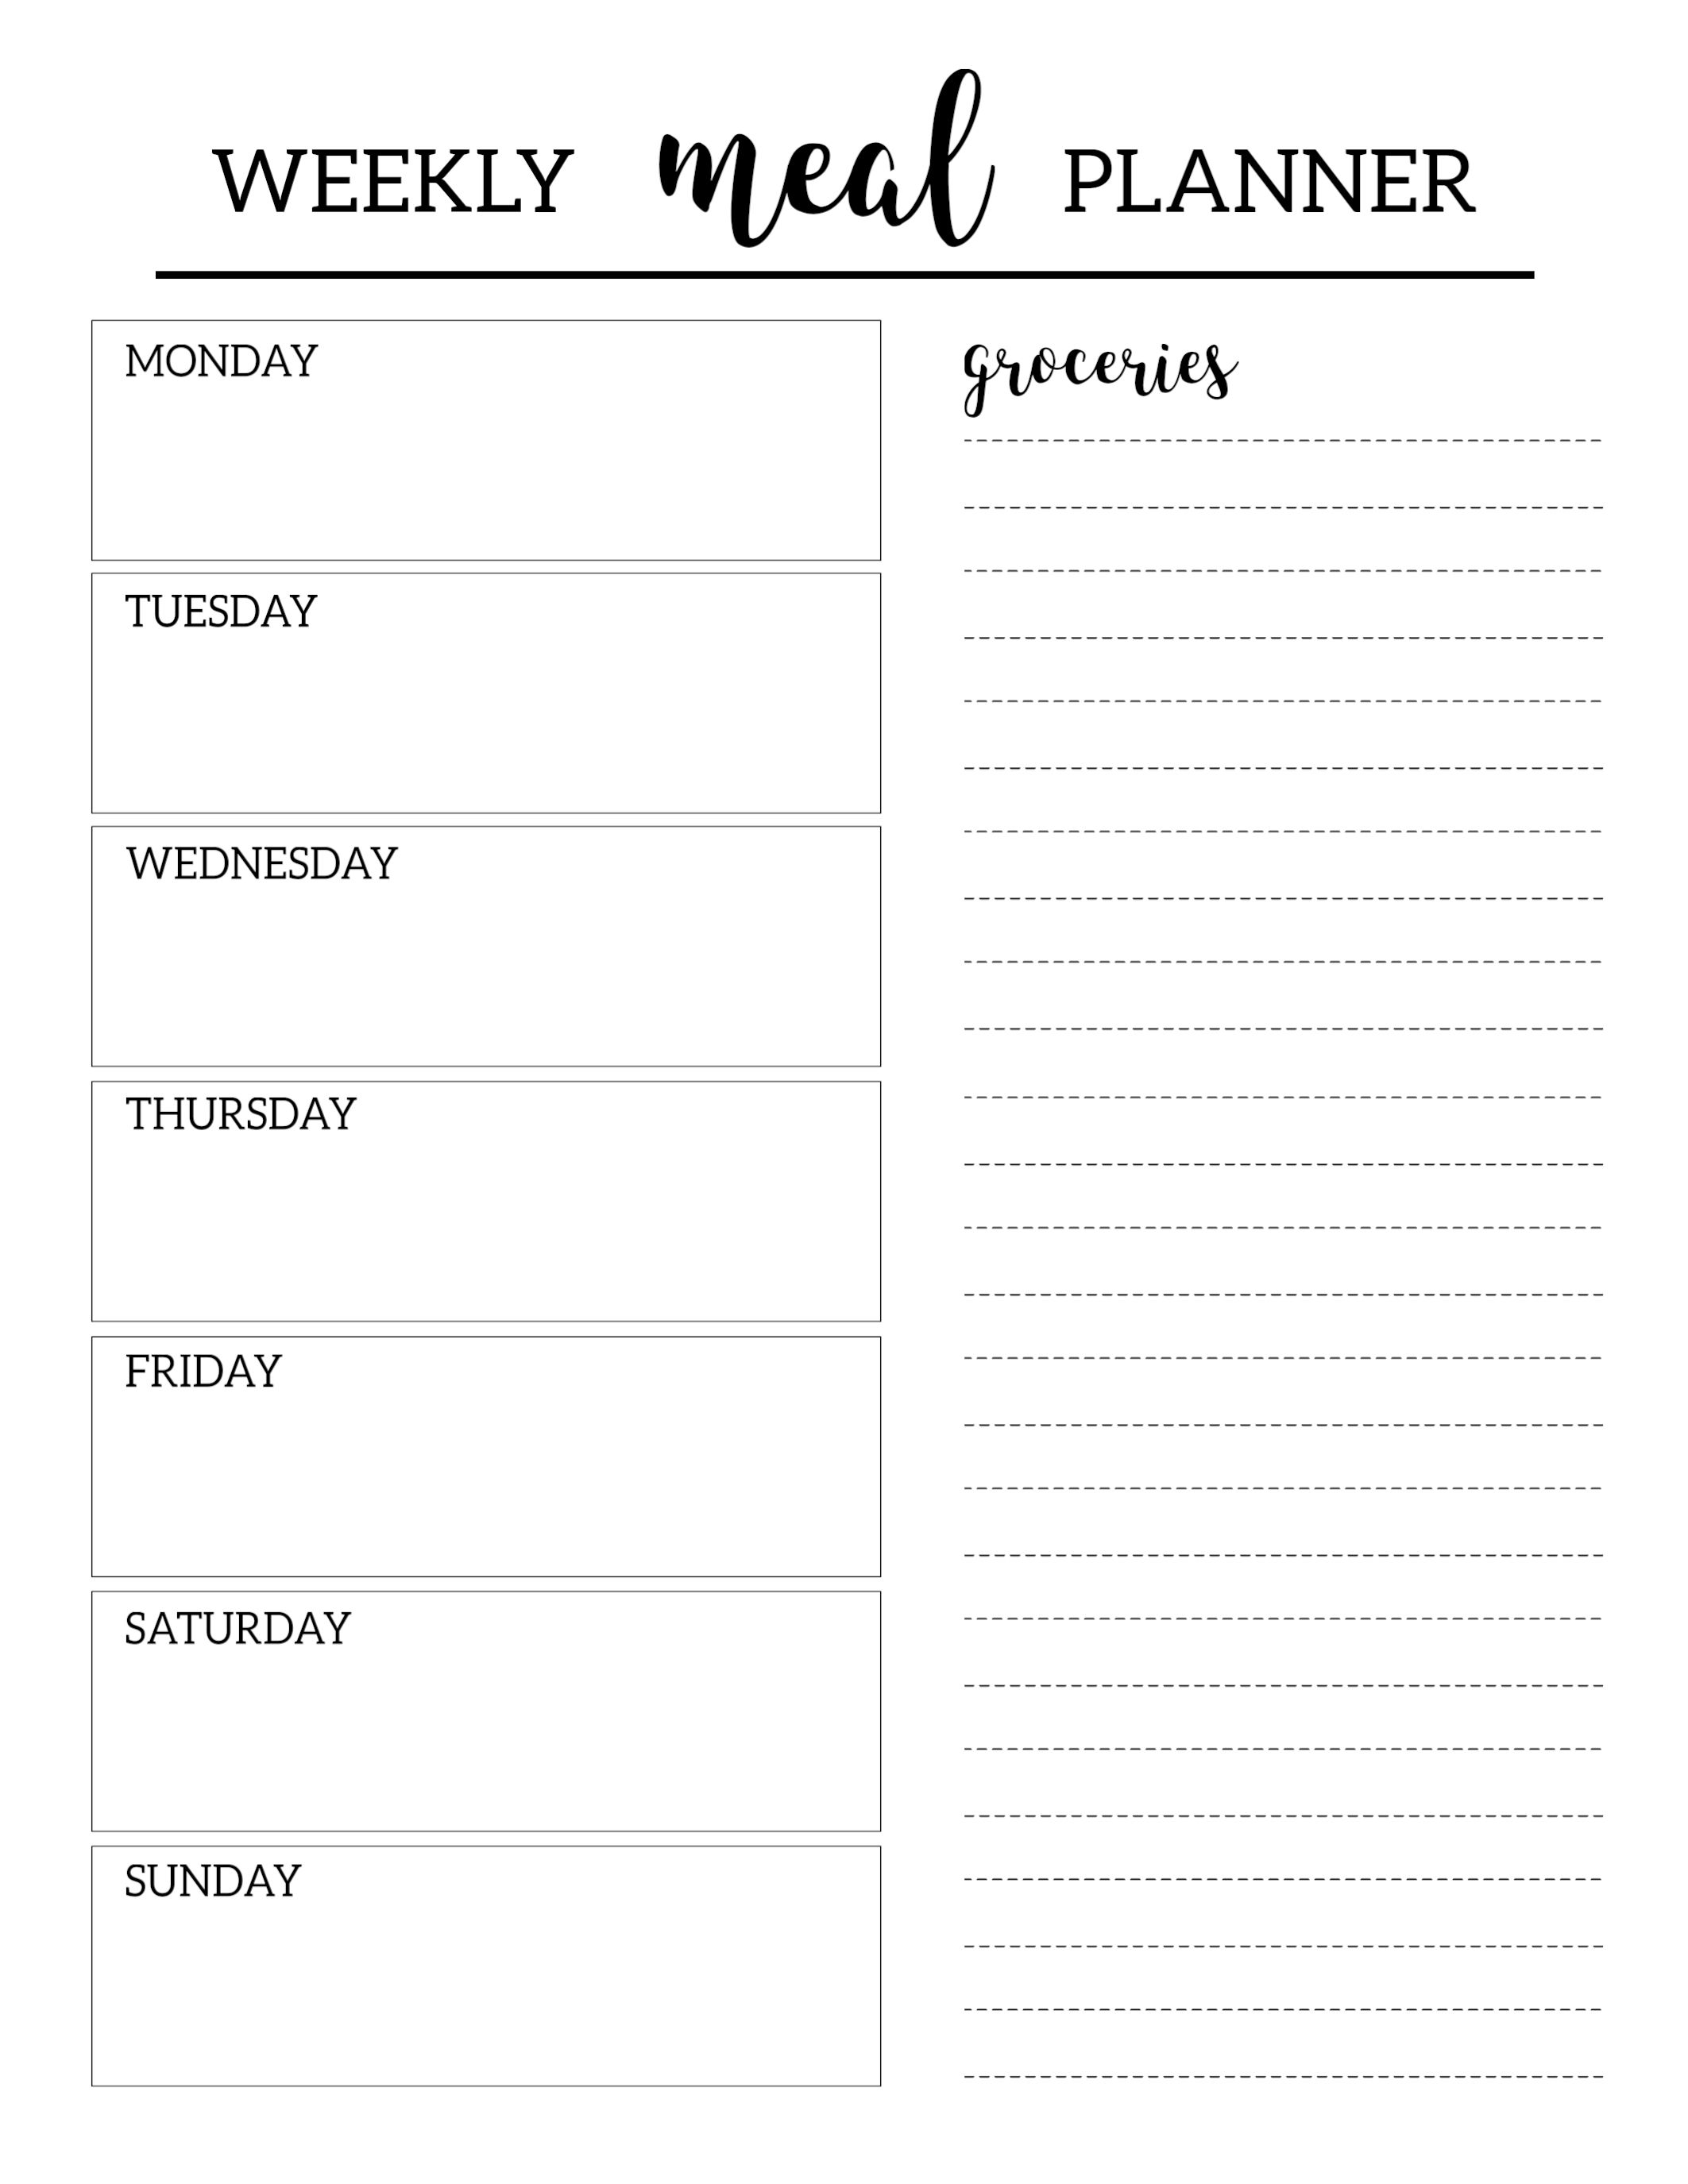 Free Printable Meal Planner Template Free printable meal